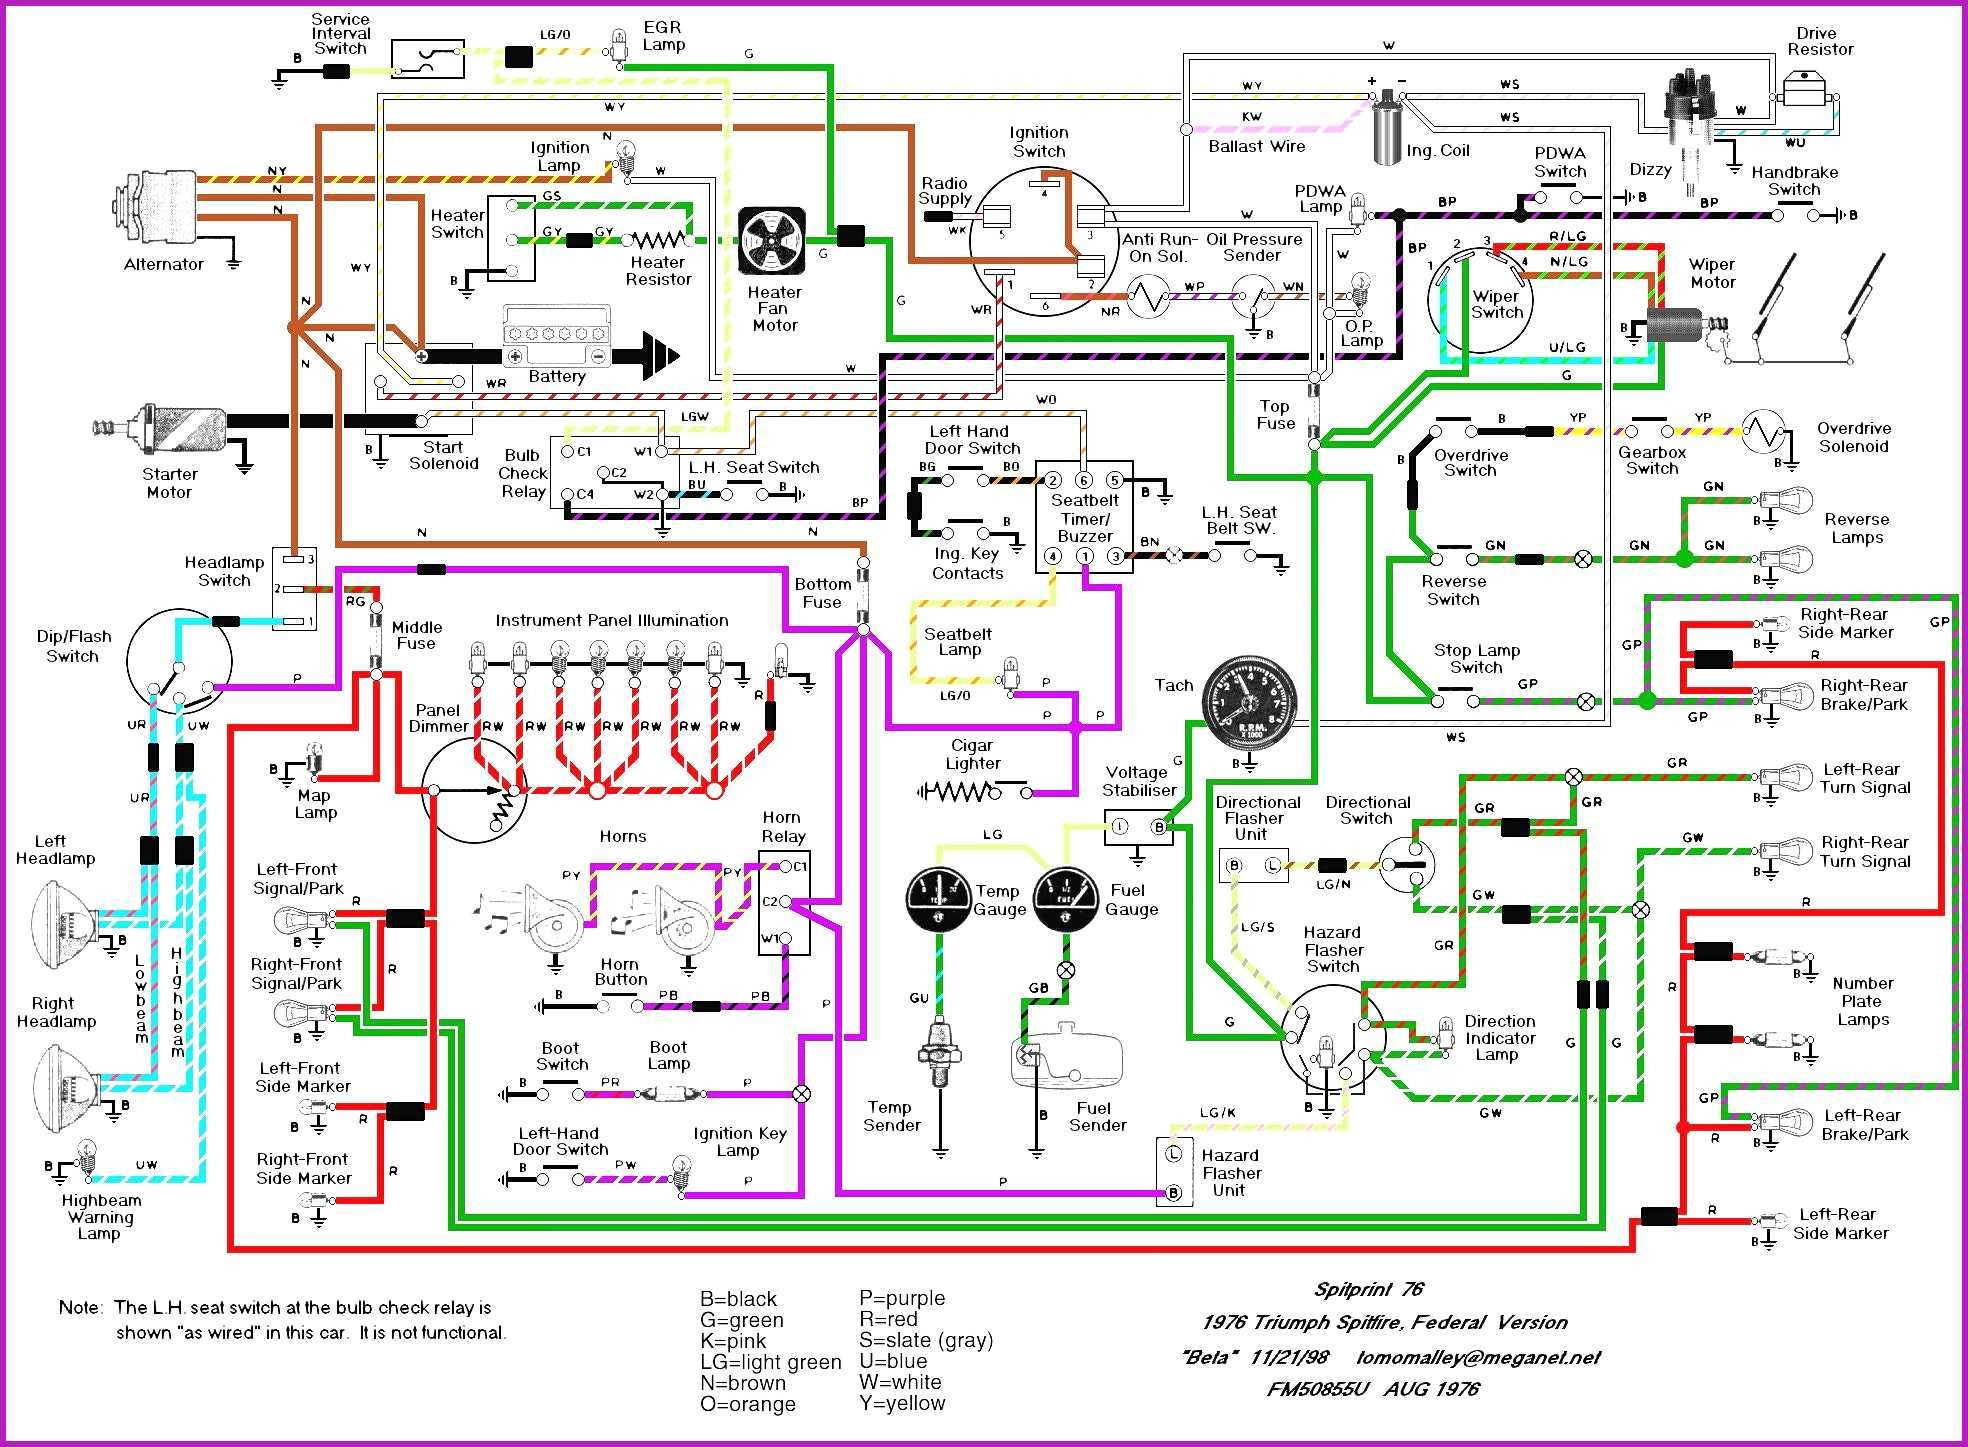 Wire Diagrams 2 Home electrical wiring, Diagram design